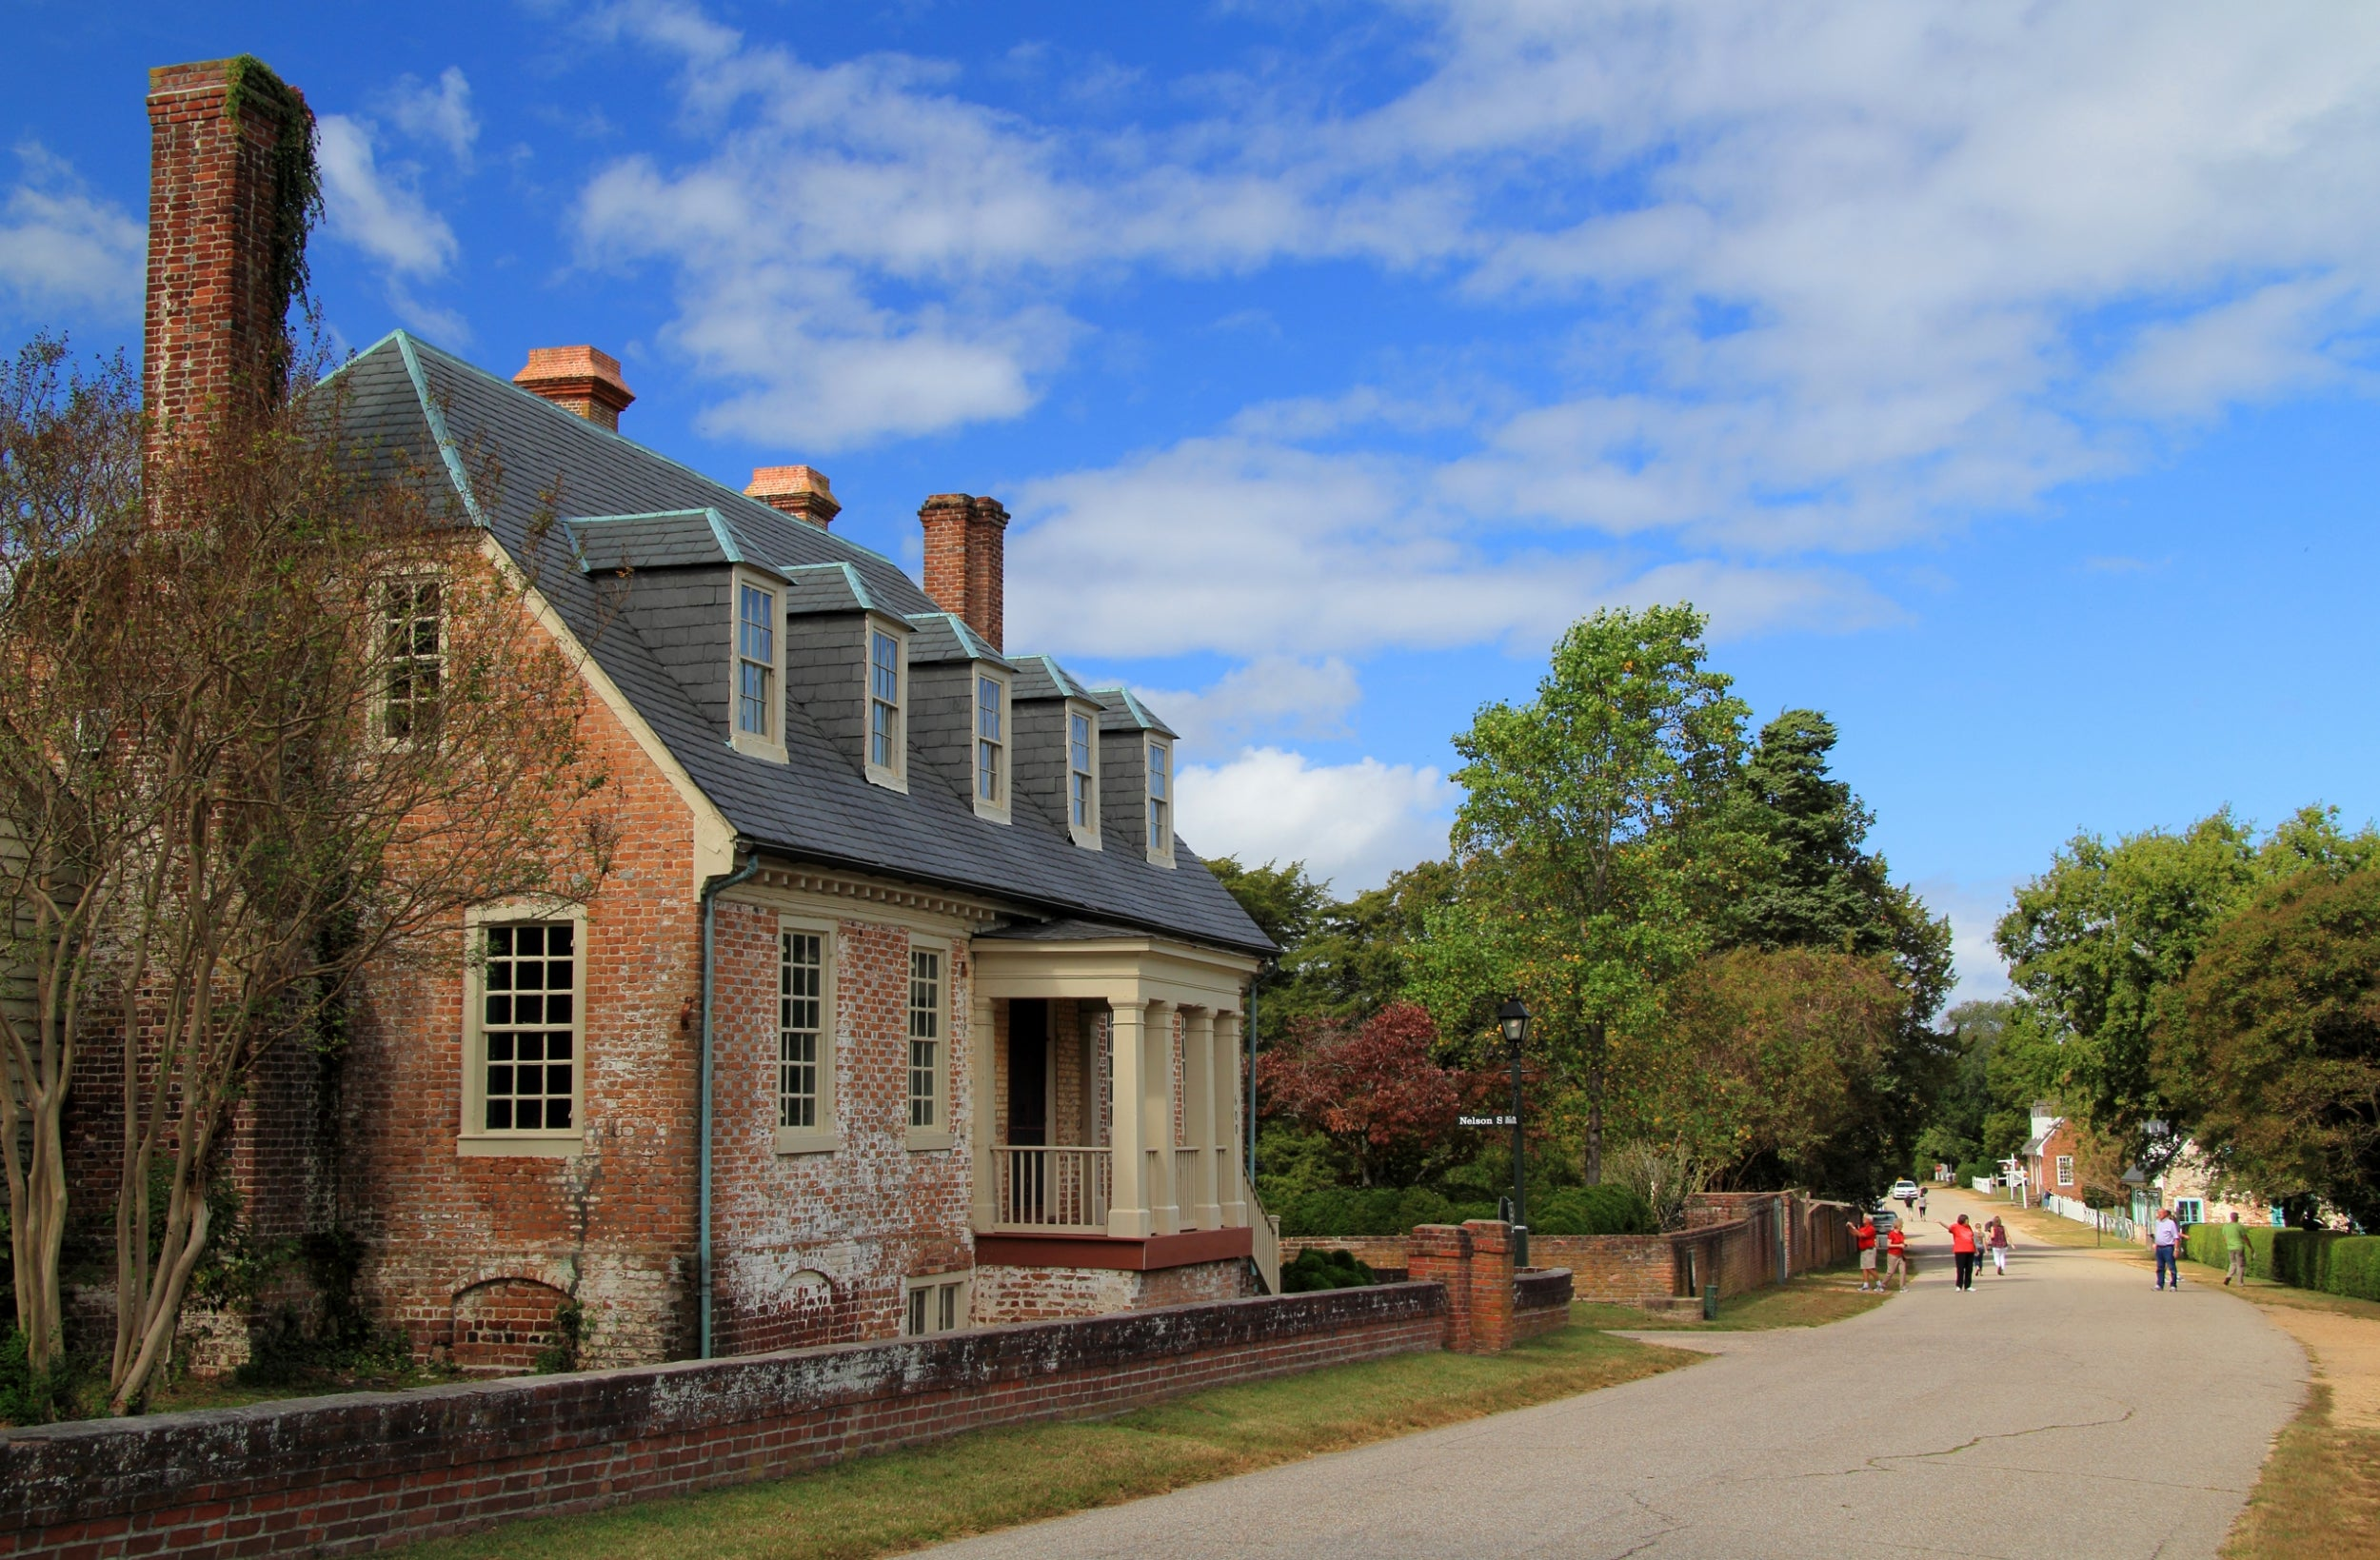 Williamsburg, Virginia: The cradle of American democracy reflects on its past